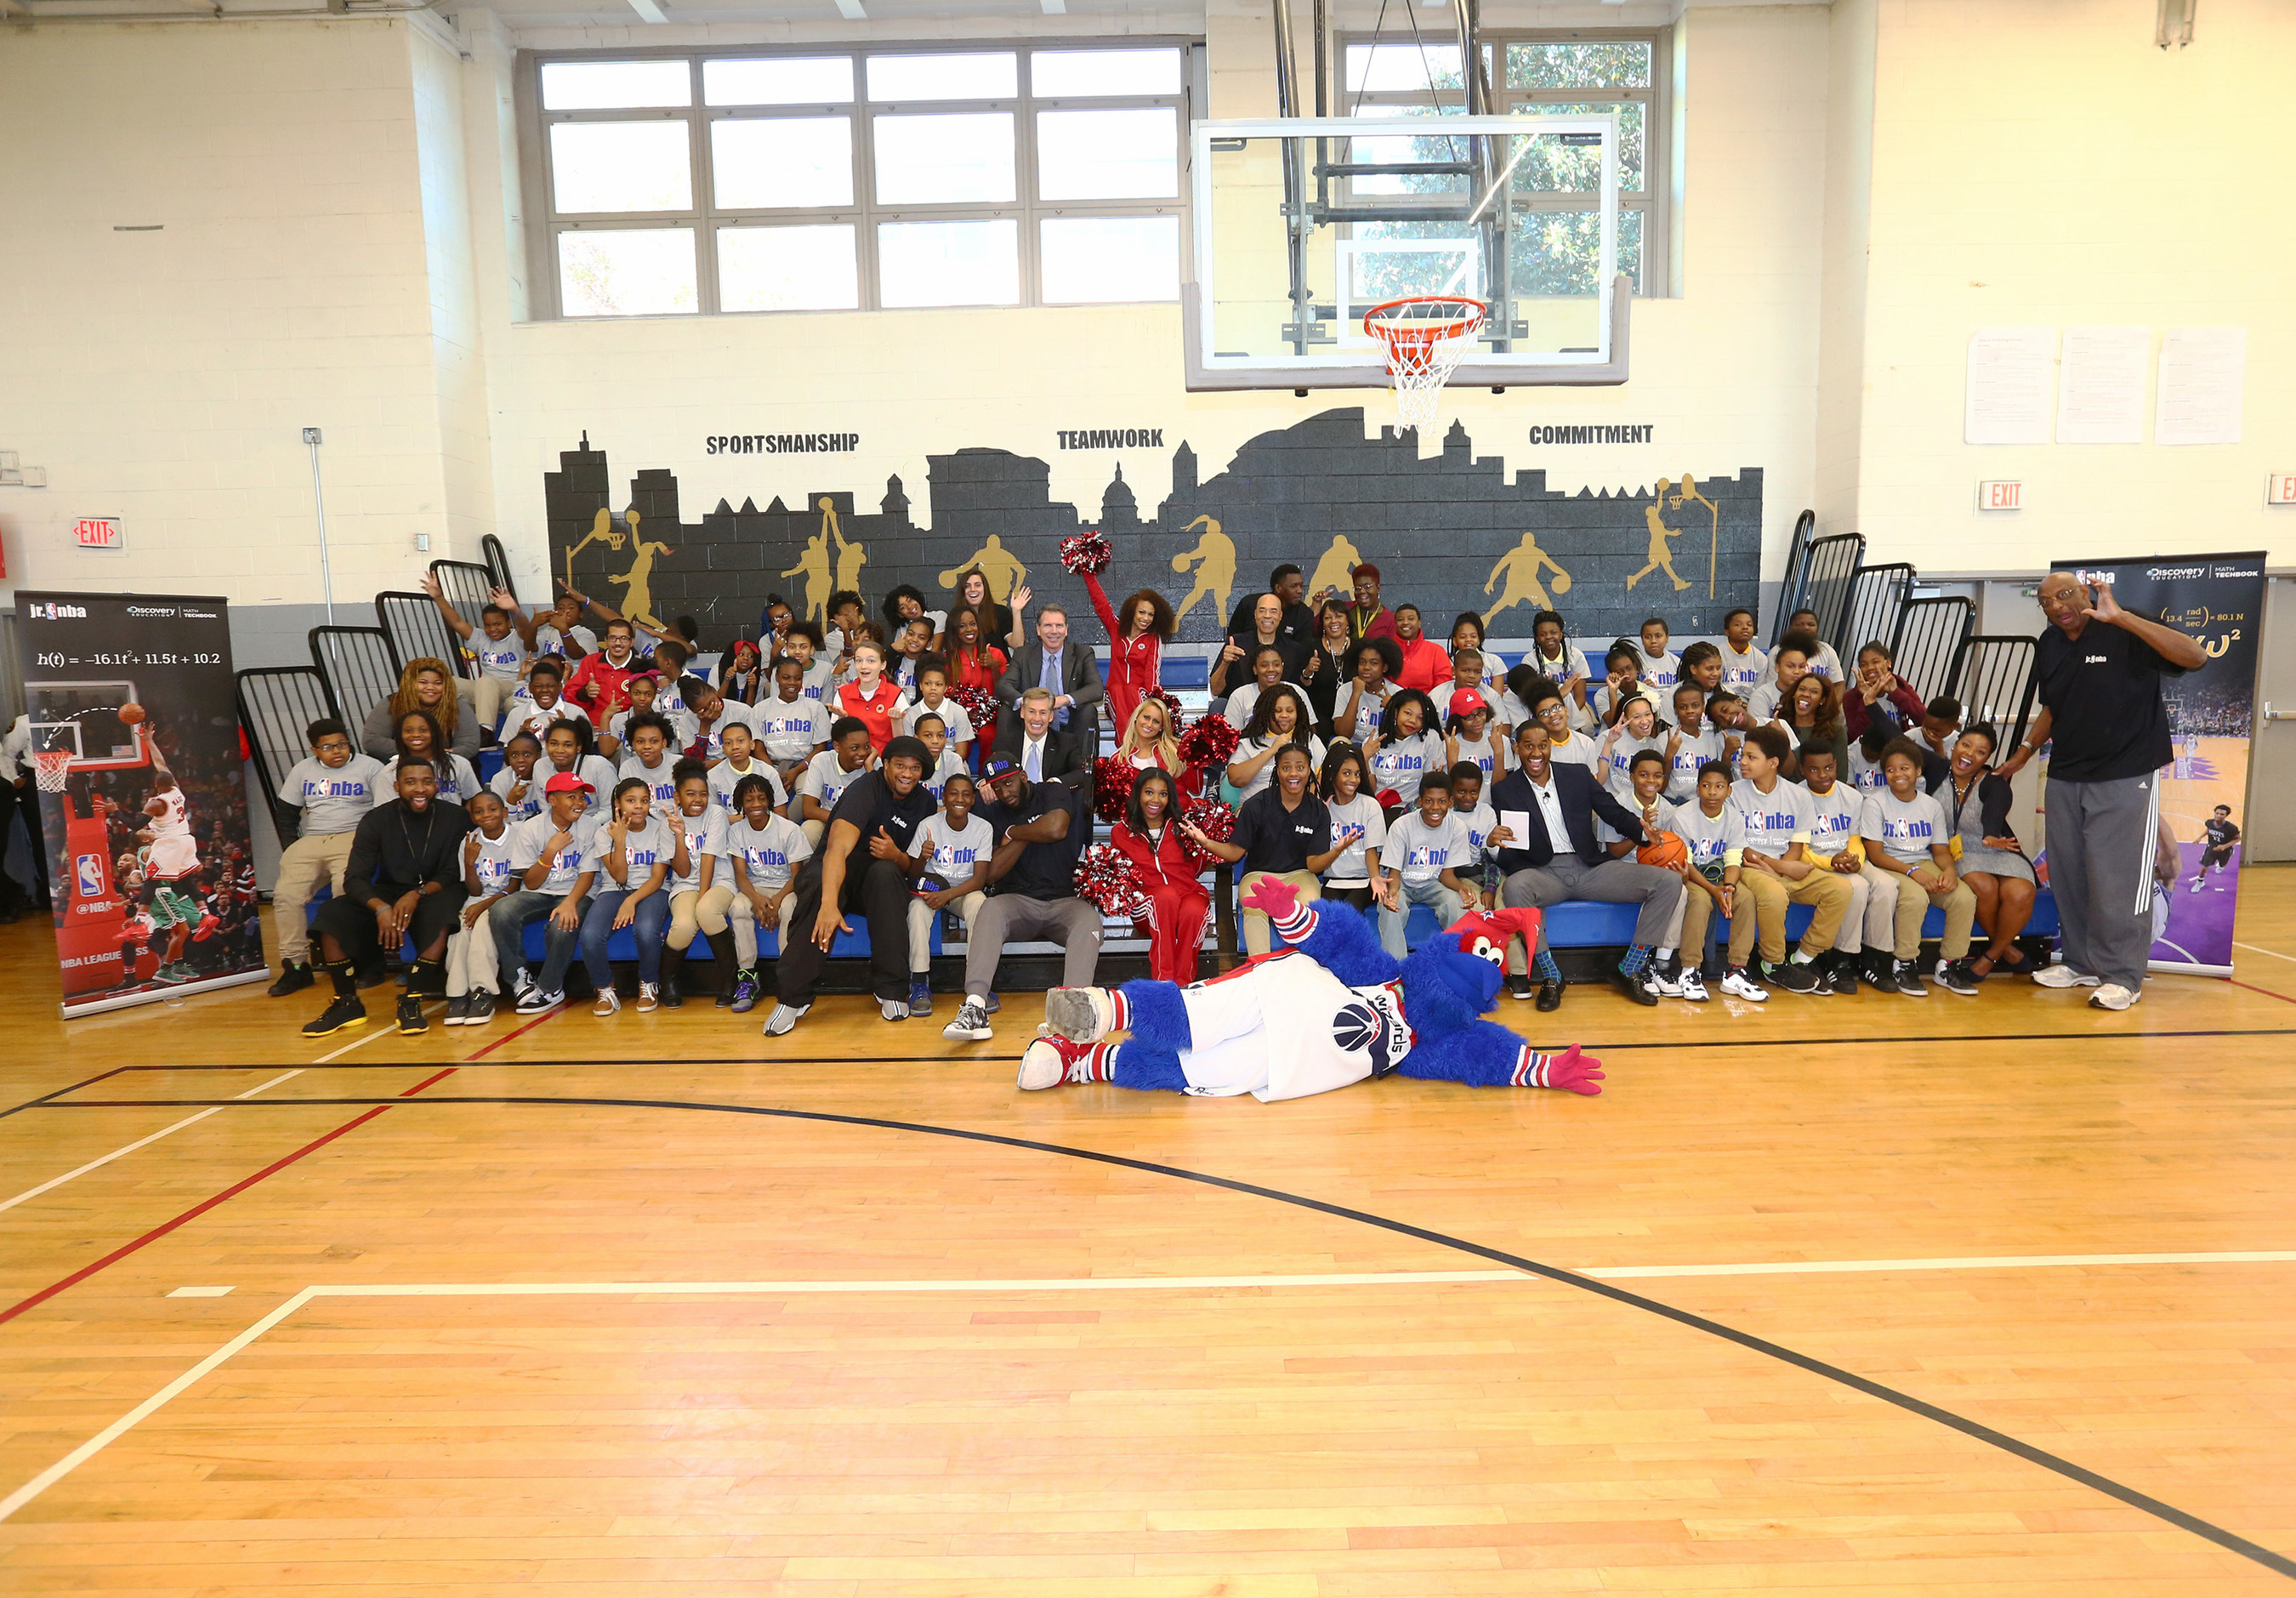 NBA and Discovery Education launch NBA math problems for Math Techbook at Johnson Middle School in Washington, D.C. with special NBA and WNBA guests including Washington Wizards forward Daniel Ochefu; Washington Mystics point guard Ivory Latta; Washington Wizards legends Phil Chenier and Etan Thomas; Hall of Famer and NBA Cares Ambassador Bob Lanier; NBA legend and NBA Cares Ambassador Felipe Lopez; NBA legend and NBA Executive Vice President, Basketball Operations Kiki VanDeWeghe...